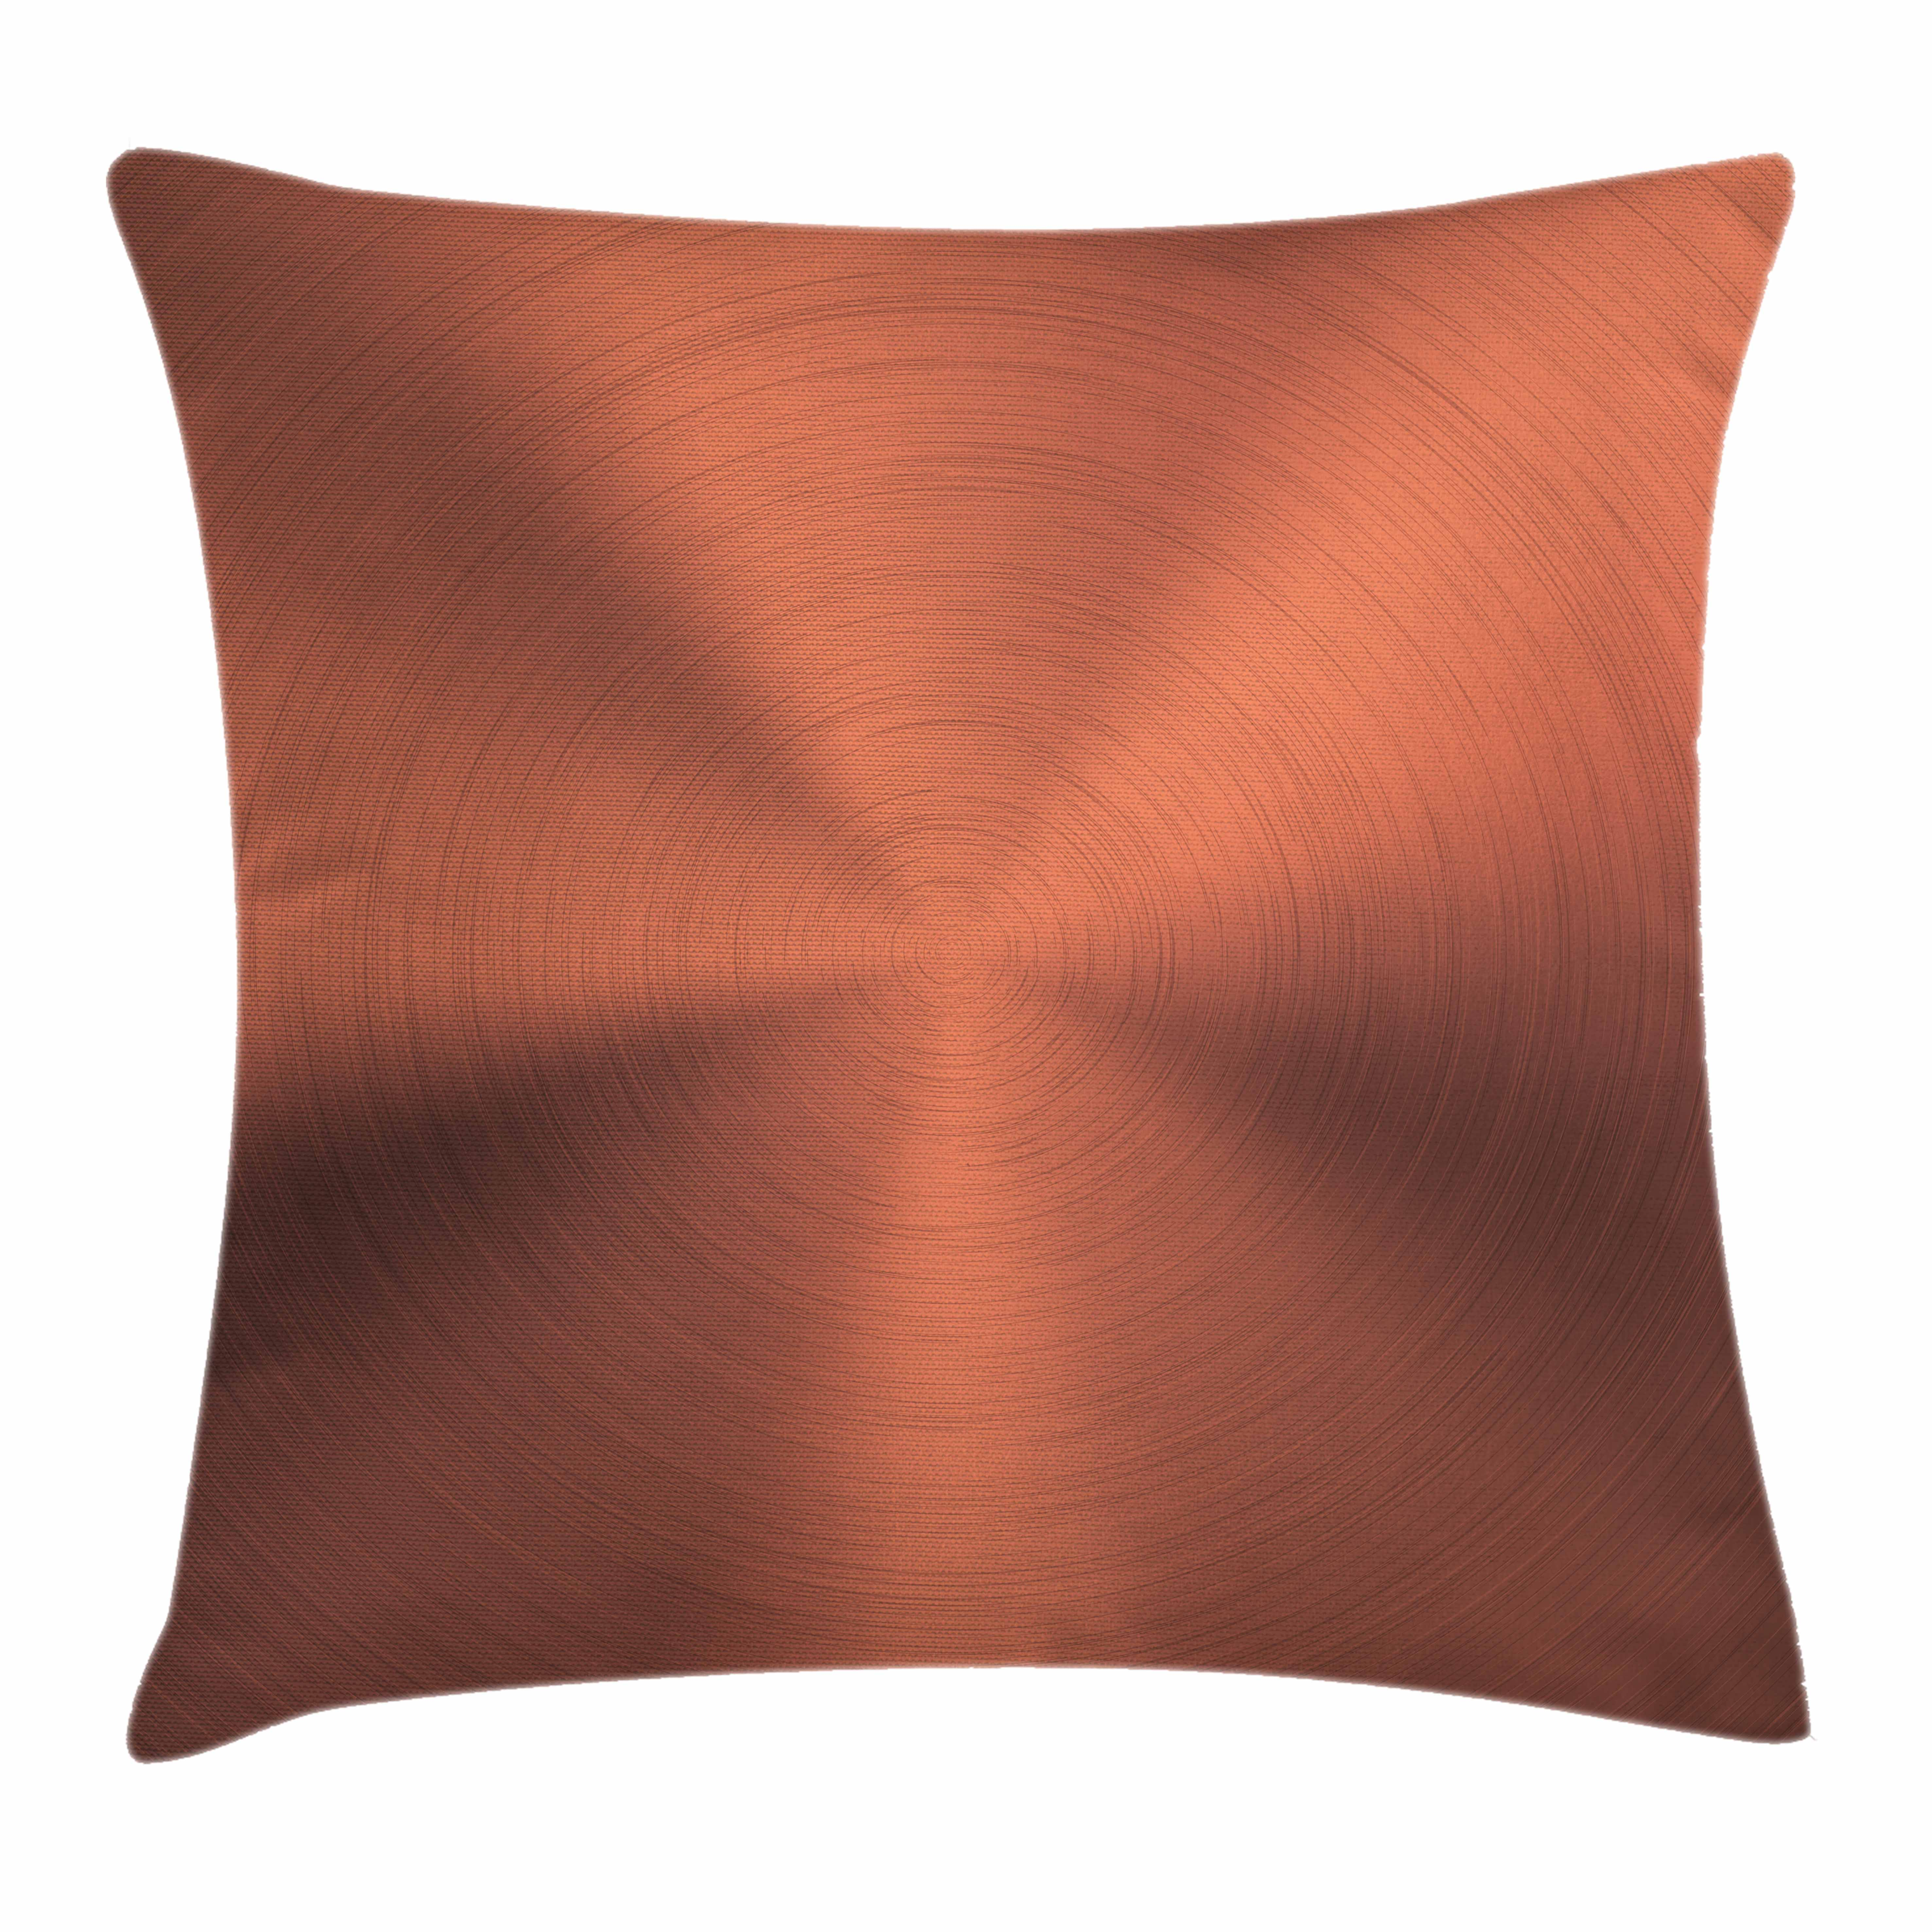 Copper Decor Throw Pillow Cushion Cover, Realistic Circular Brushed Texture Image Iron Stainless Steel Business Modern, Decorative Square Accent Pillow Case, 16 X 16 Inches, Bronze, by Ambesonne